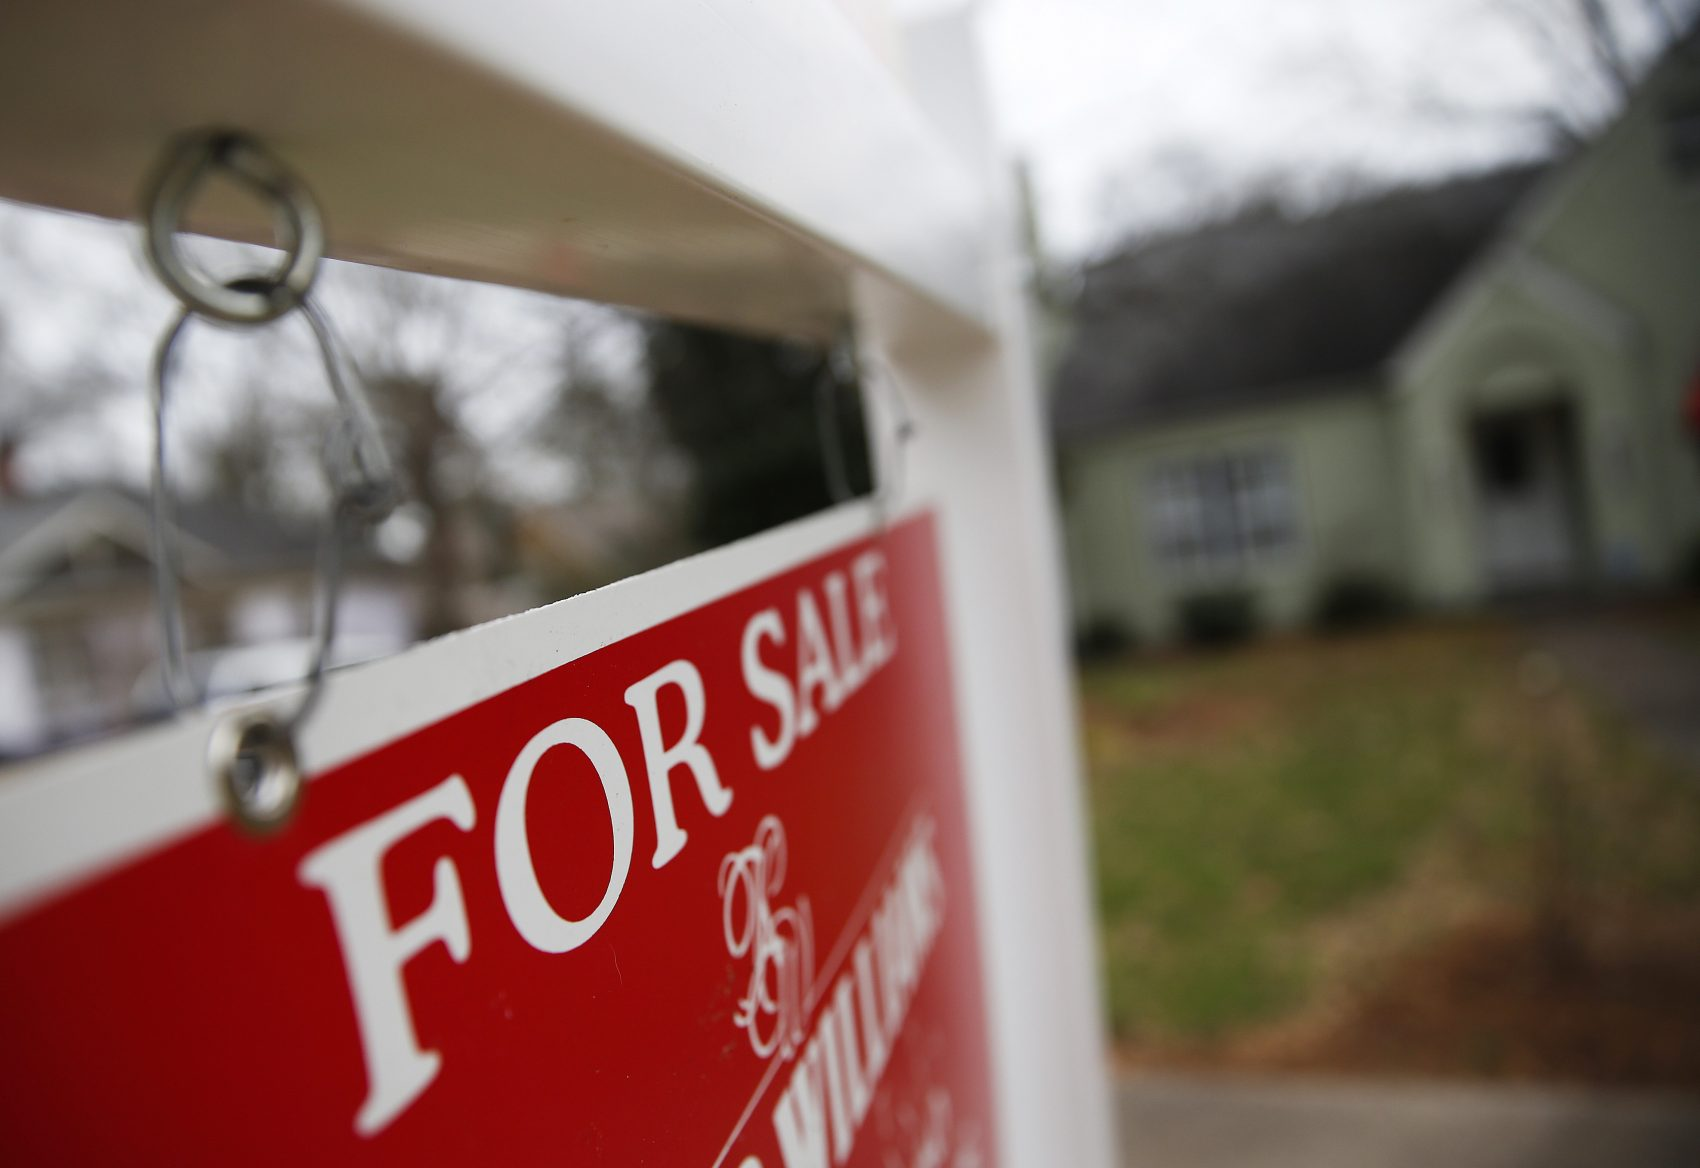 """This Jan. 26, 2016 file photo shows a """"For Sale"""" sign hanging in front of an existing home in Atlanta.  Short of savings and burdened by debt, America's millennials are struggling to afford their first homes in the face of sharply higher prices in many of the most desirable cities. Surveys show that most Americans under 35 lack adequate savings for down payments. The result is that many will likely be forced to delay home ownership and to absorb significant debt loads if they do eventually buy. (John Bazemore, File/AP)"""